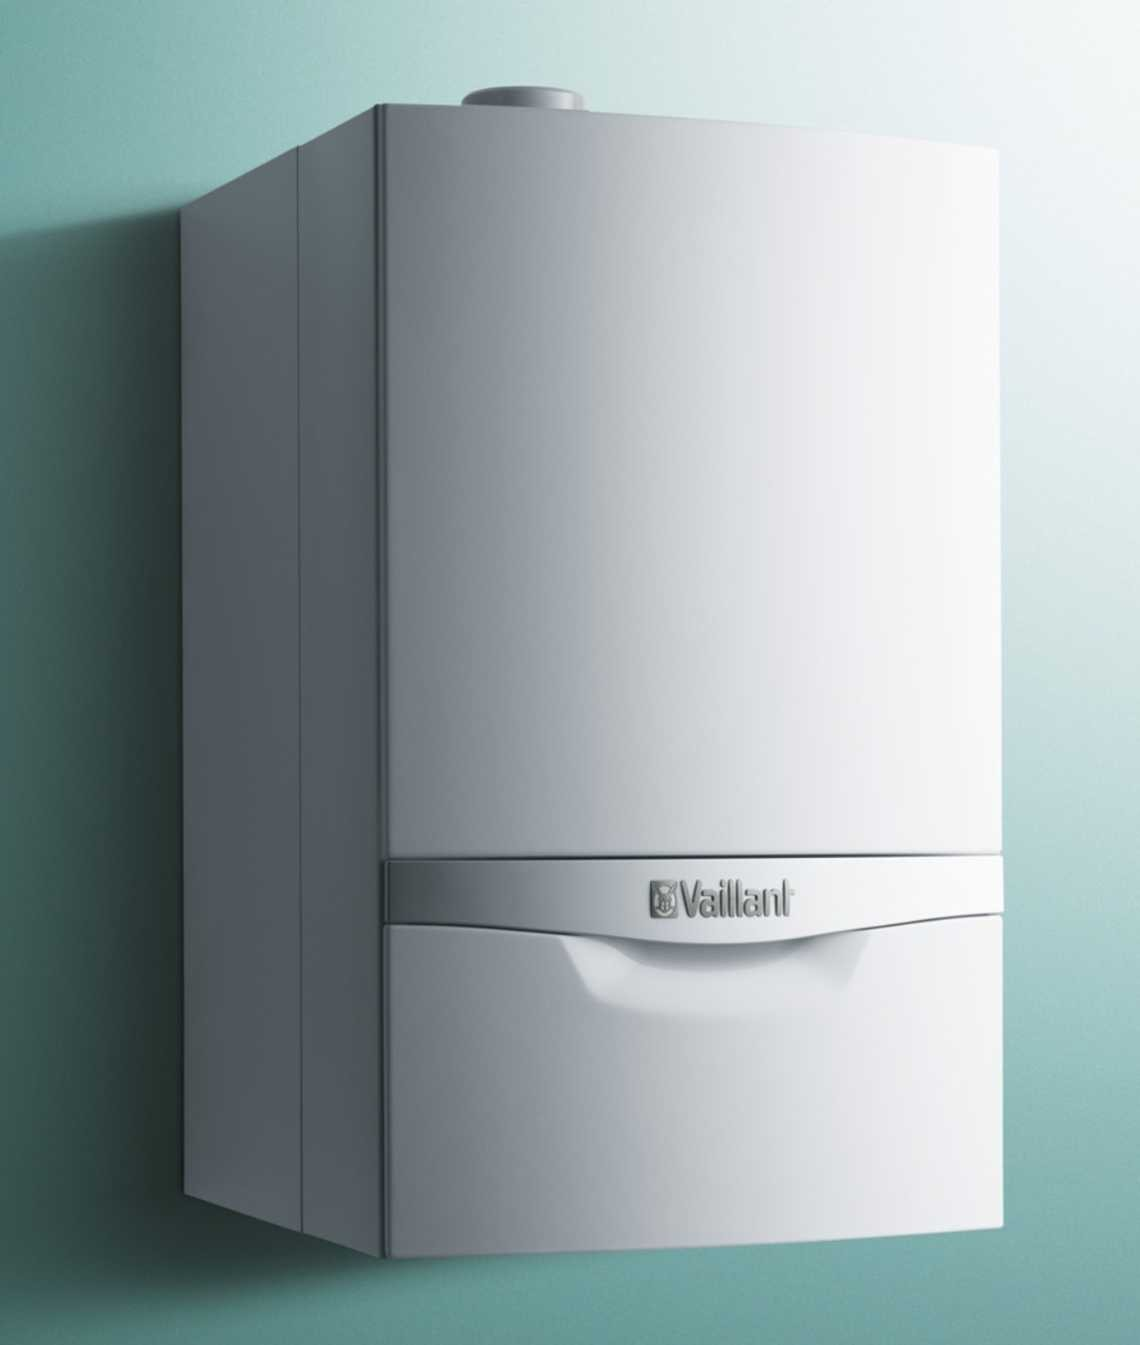 Газовий котел Vaillant ecoTEC Plus VU INT 306/5-5 H - Теплоцентр